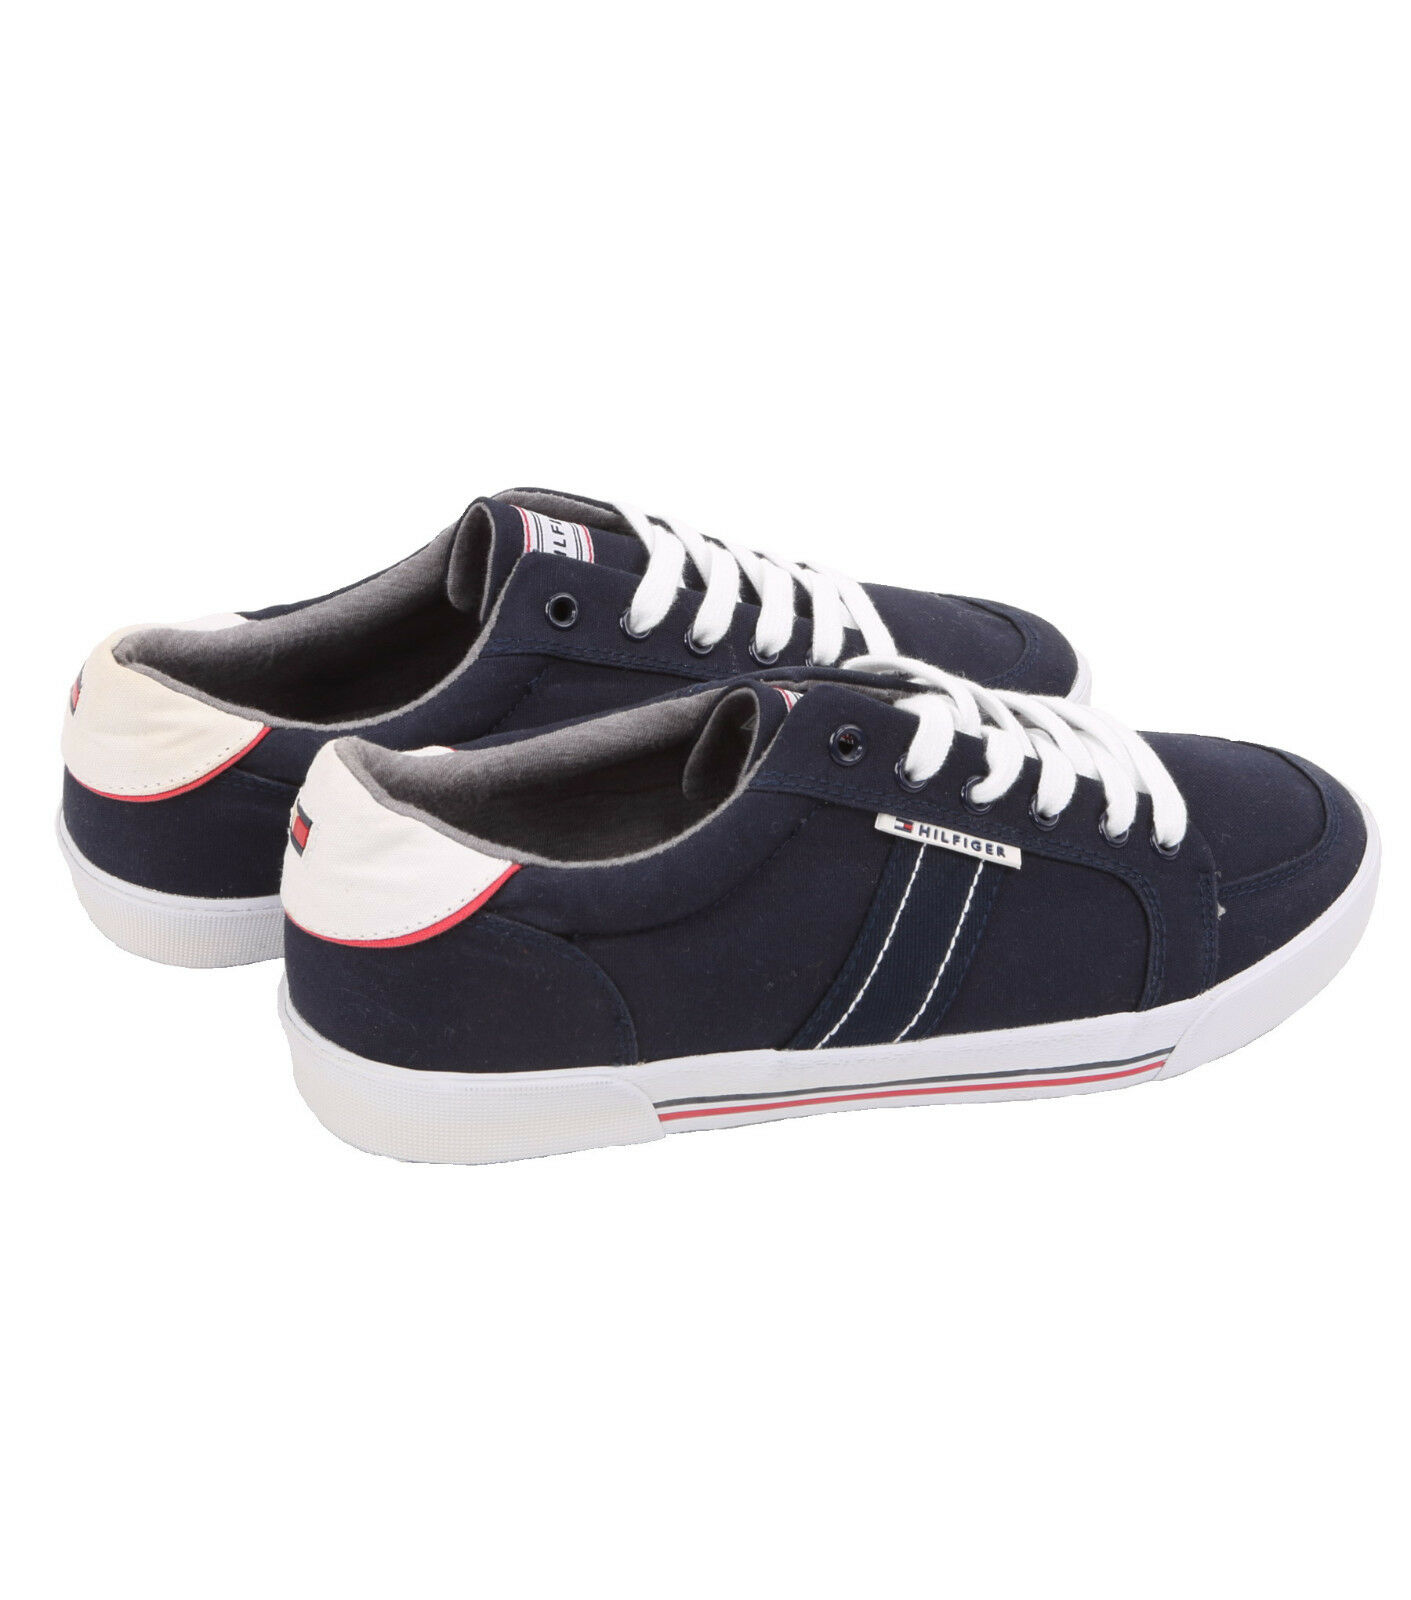 Tommy Hilfiger AM DEMPSY-A Sneaker Navy Blue Multi Fabric Sneaker DEMPSY-A Shoes - $0 Free Ship 1a01c3